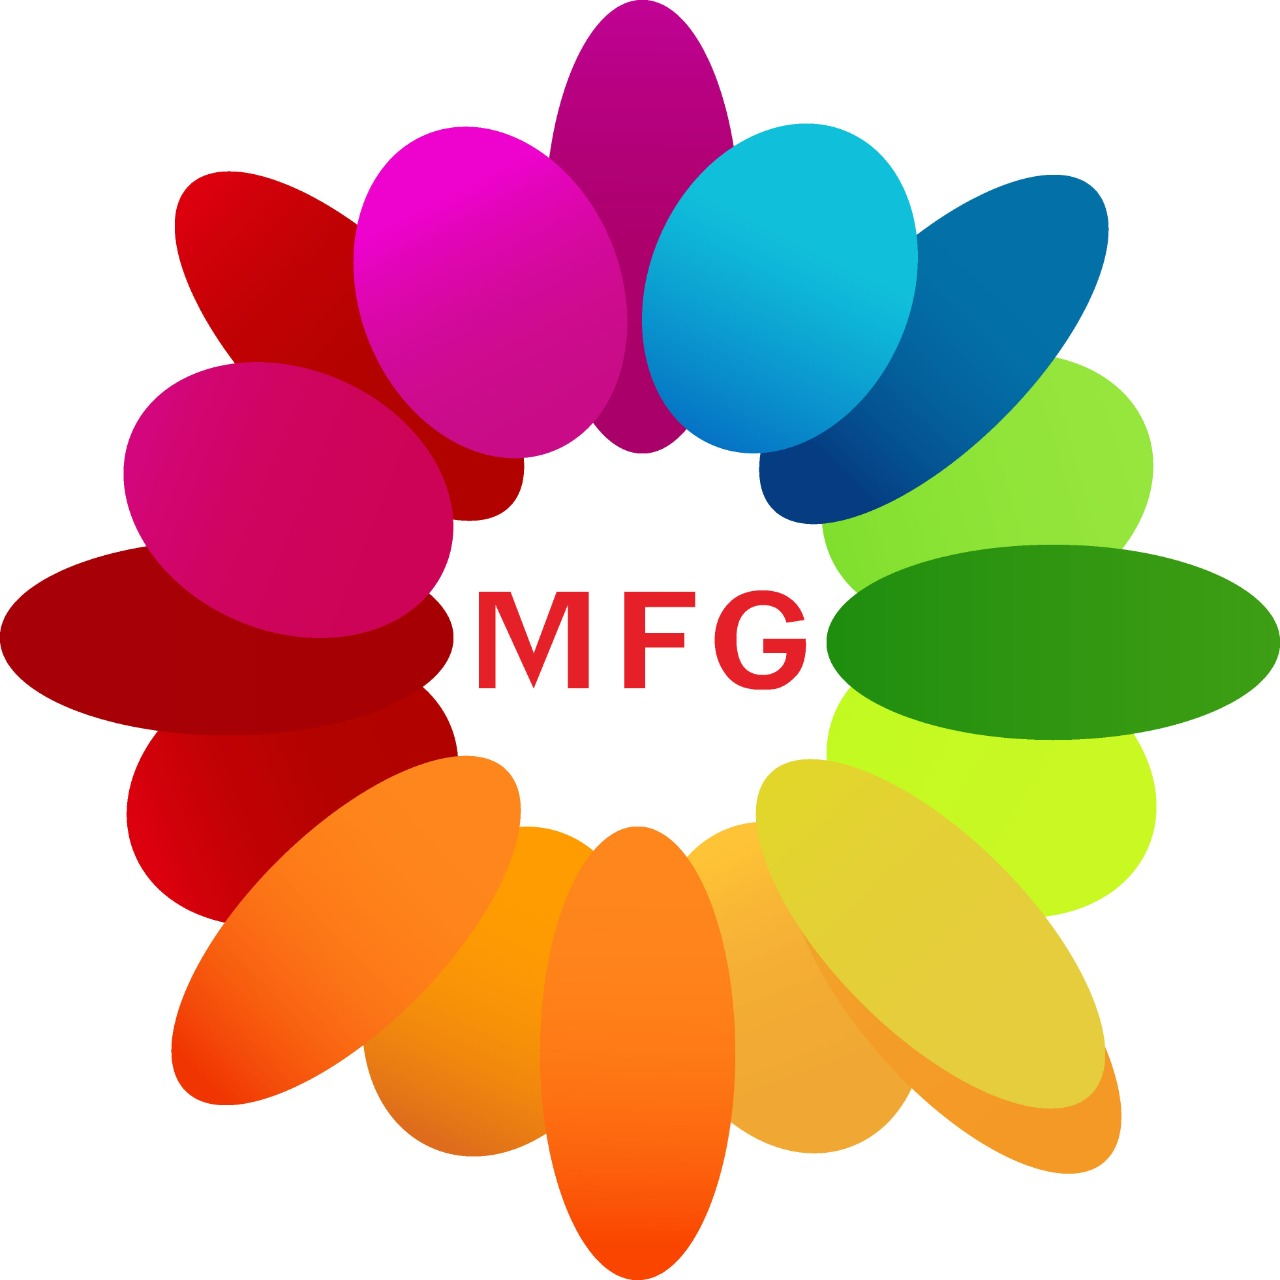 1 Feet Height Teddy Sitting In Flower Basket With Mix Flower